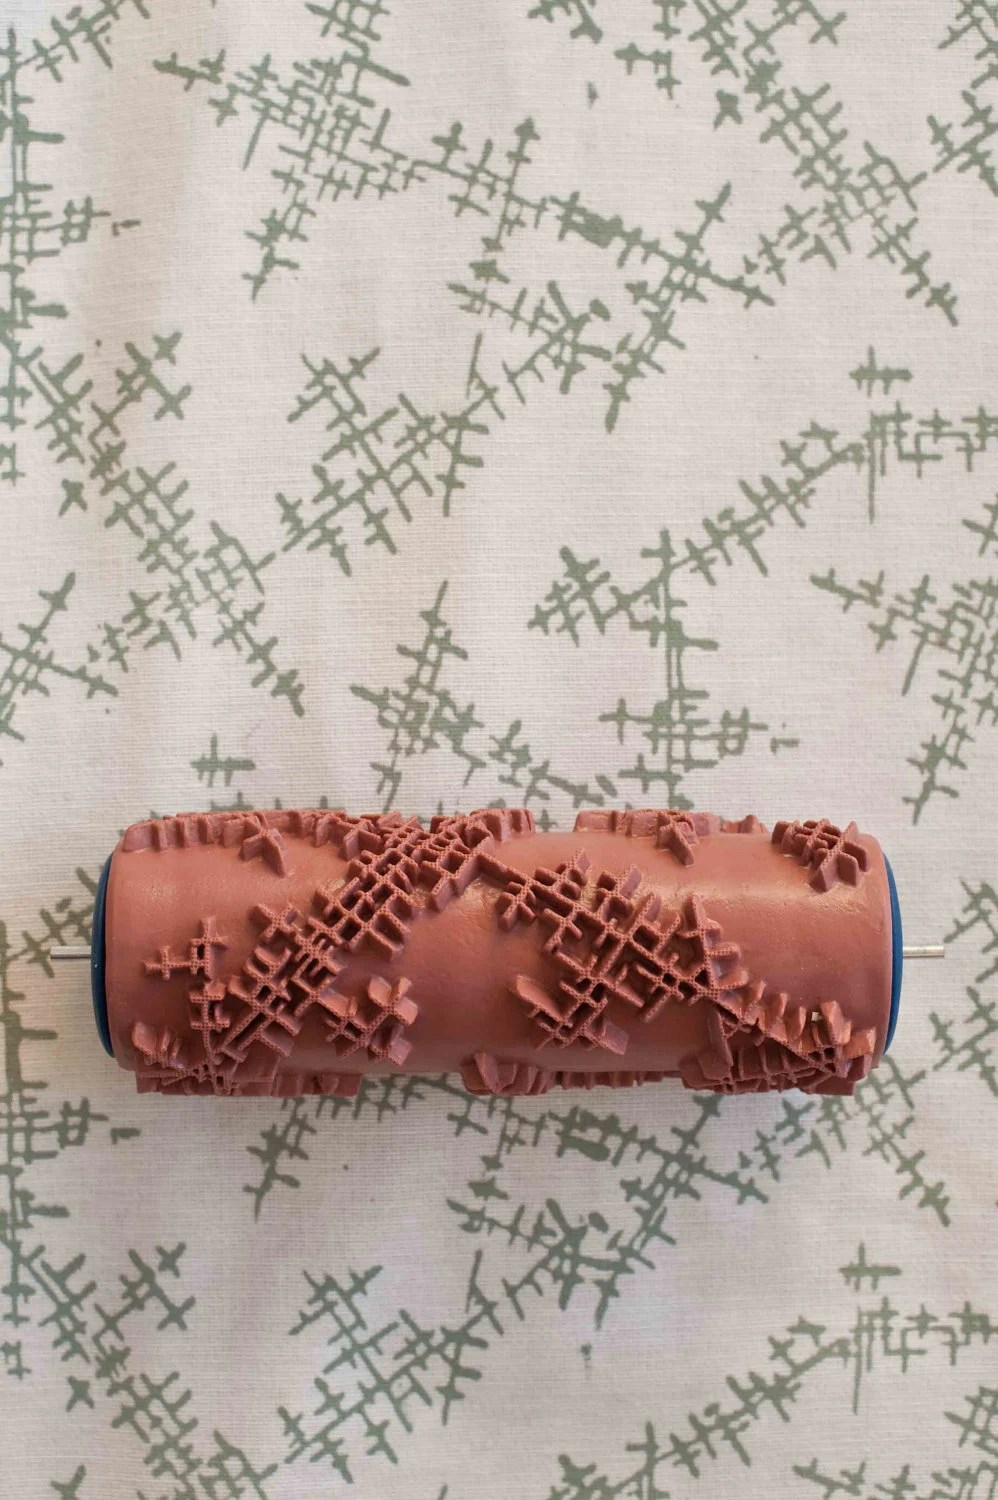 No. 11 Patterned Paint Roller from The Painted House